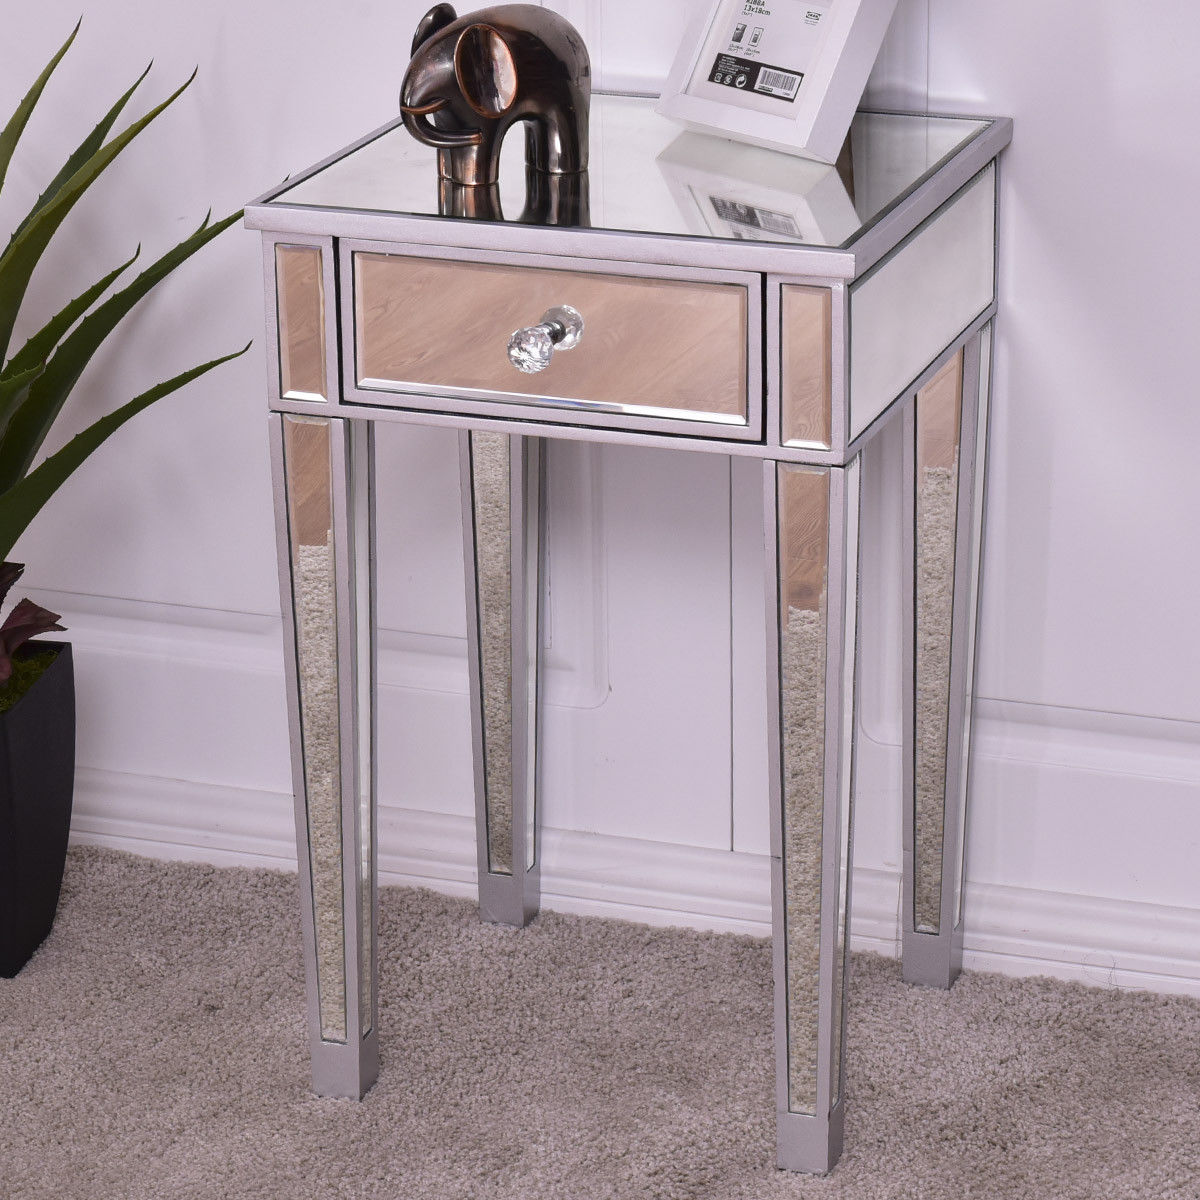 giantex mirrored accent table nightstand end luxury modern bedside storage cabinet with drawer coffee target bar stools velvet chair big lots daybed runner for round drop leaf